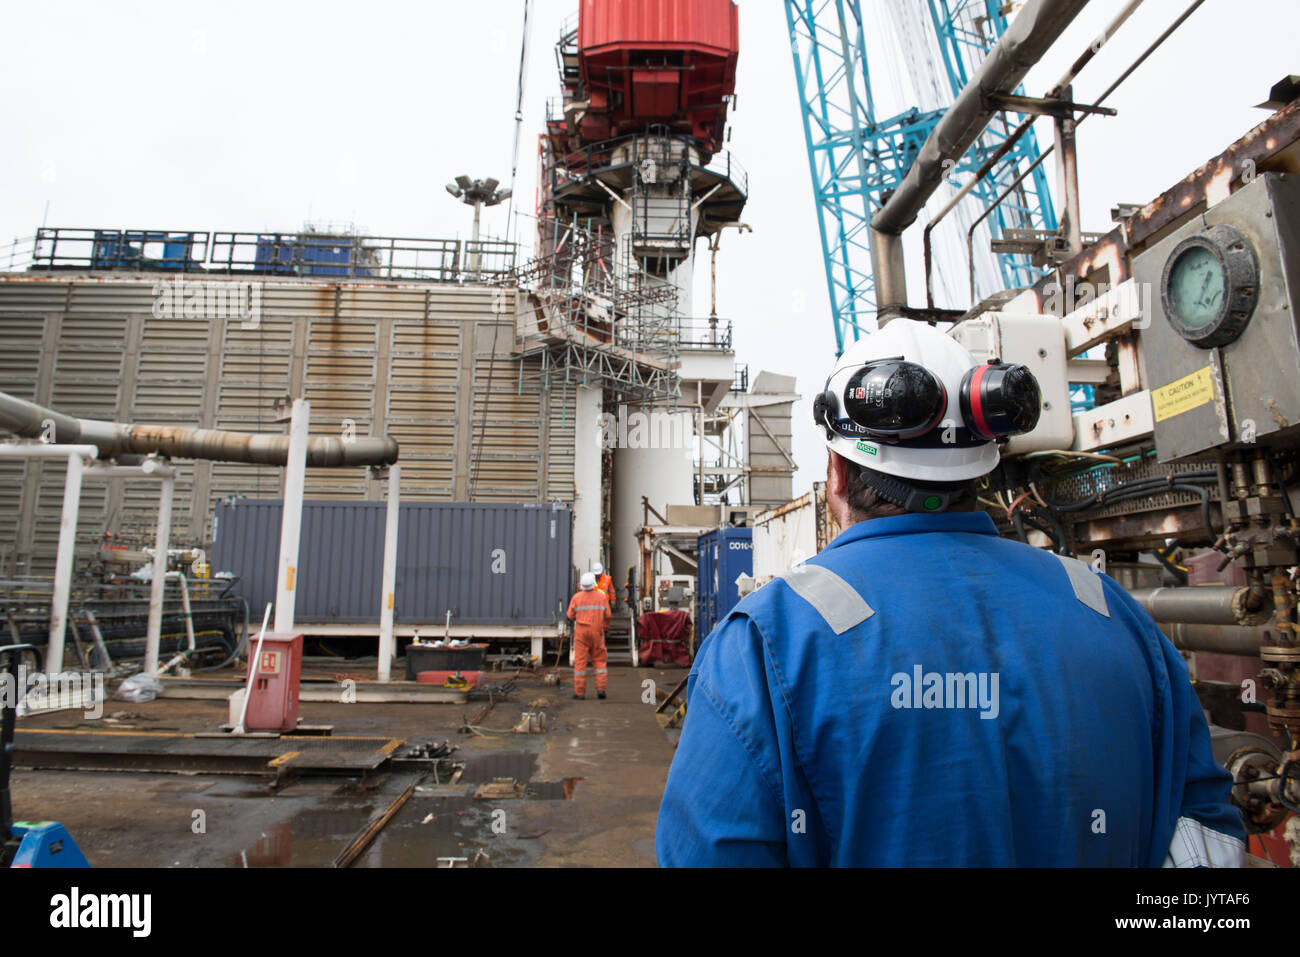 Oil and gas worker, overseeing a lifting operation on a North Sea oil and gas rig. credit: LEE RAMSDEN / ALAMY - Stock Image